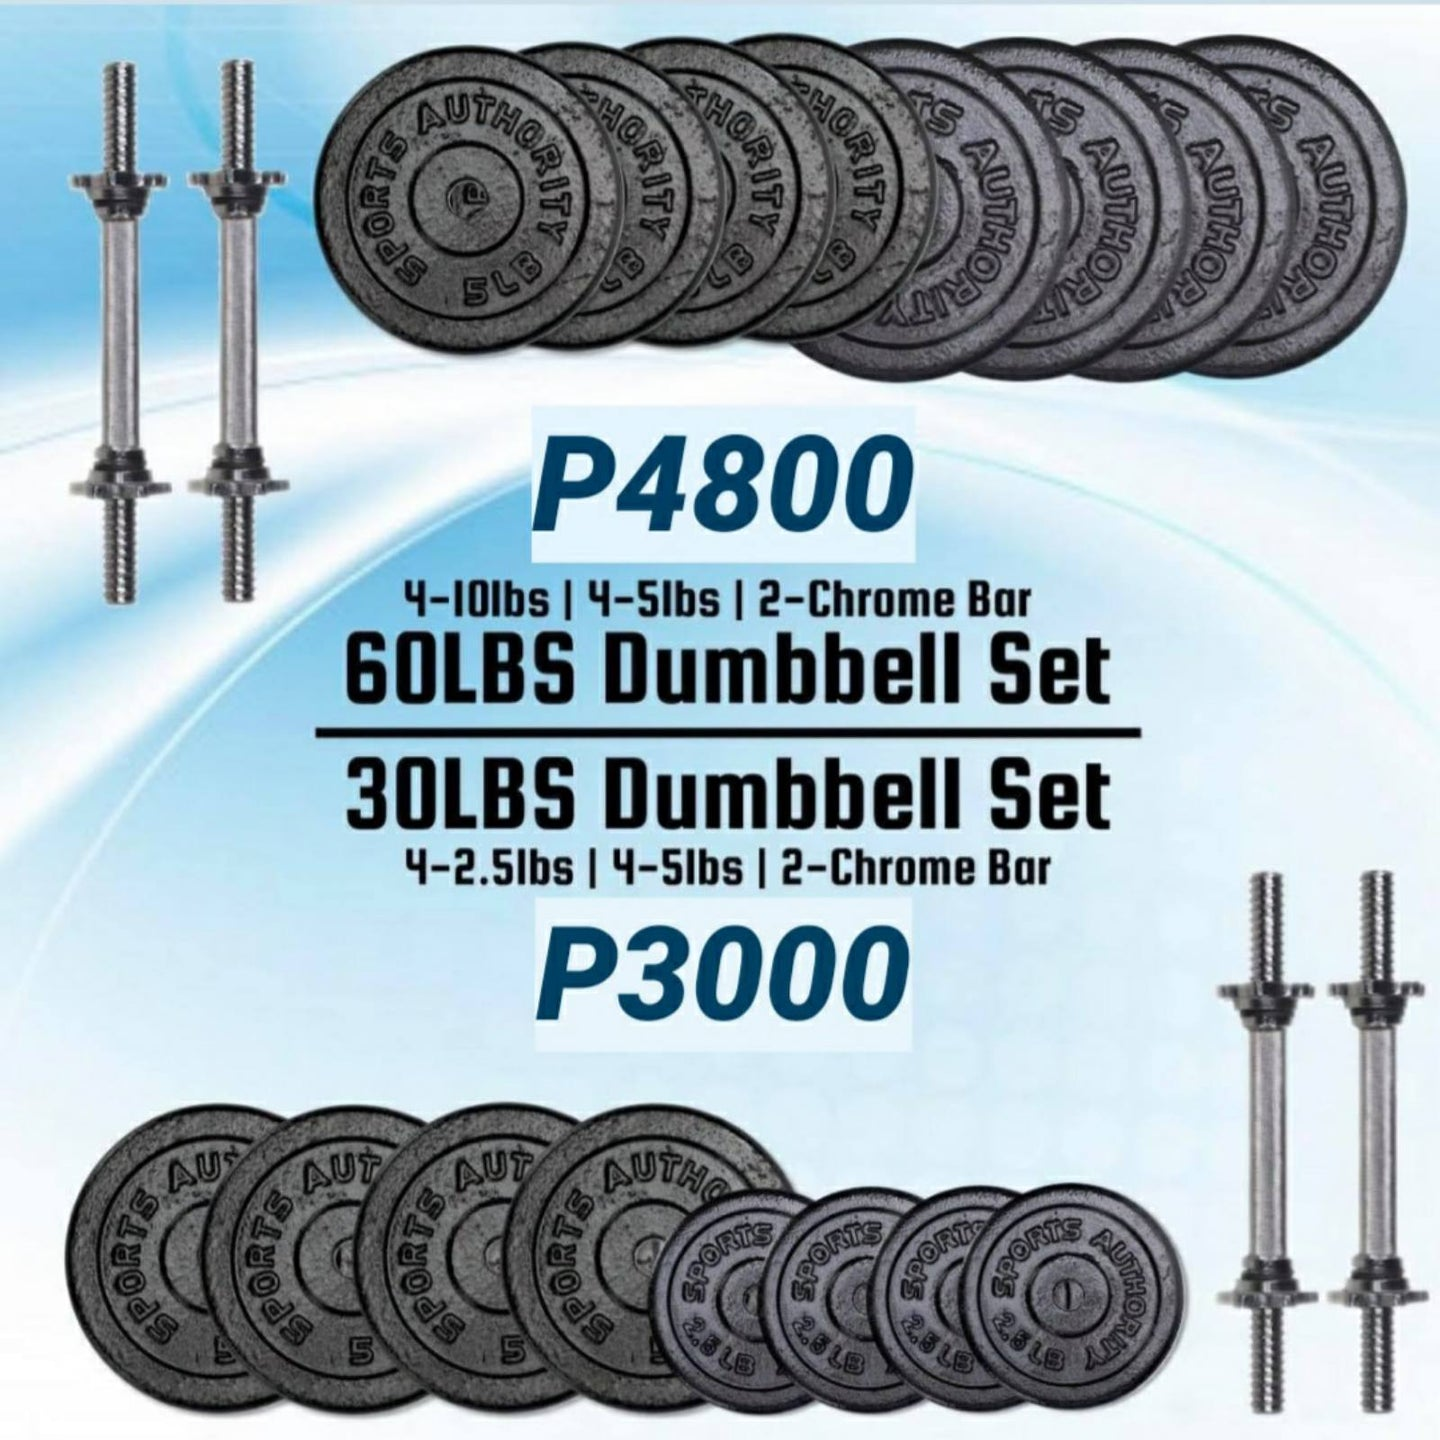 30lbs or 60lbs Dumbbell Set